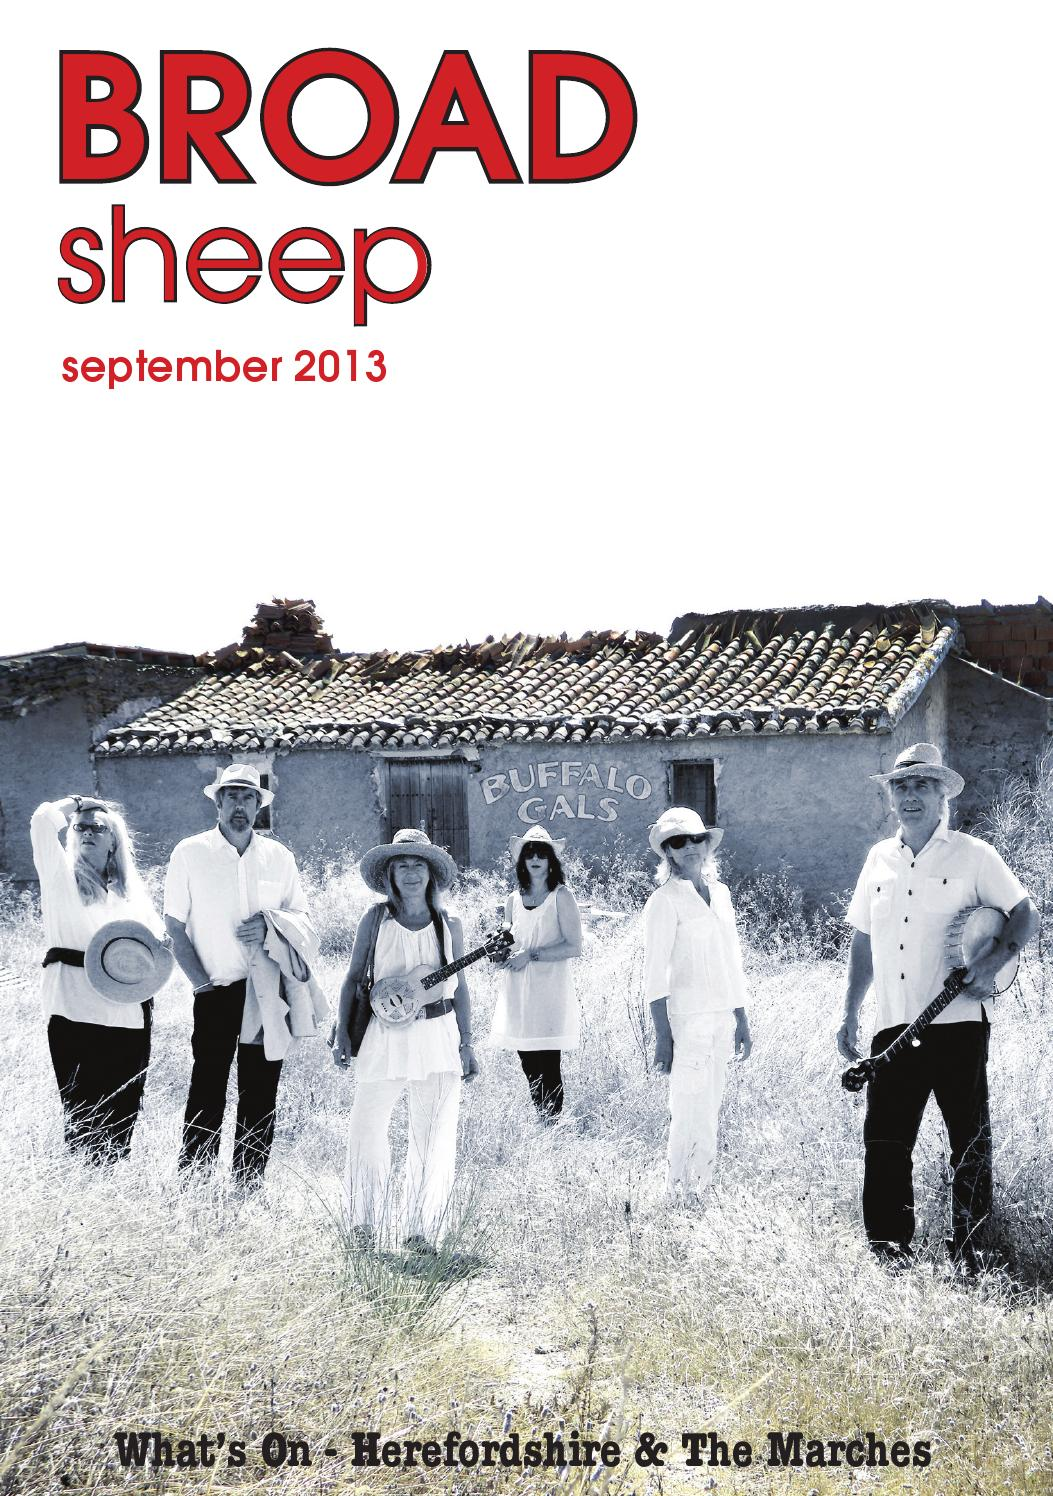 Broad Sheep September 2013 By Broadsheep Issuu Frame Pato Fx 1 Alloy